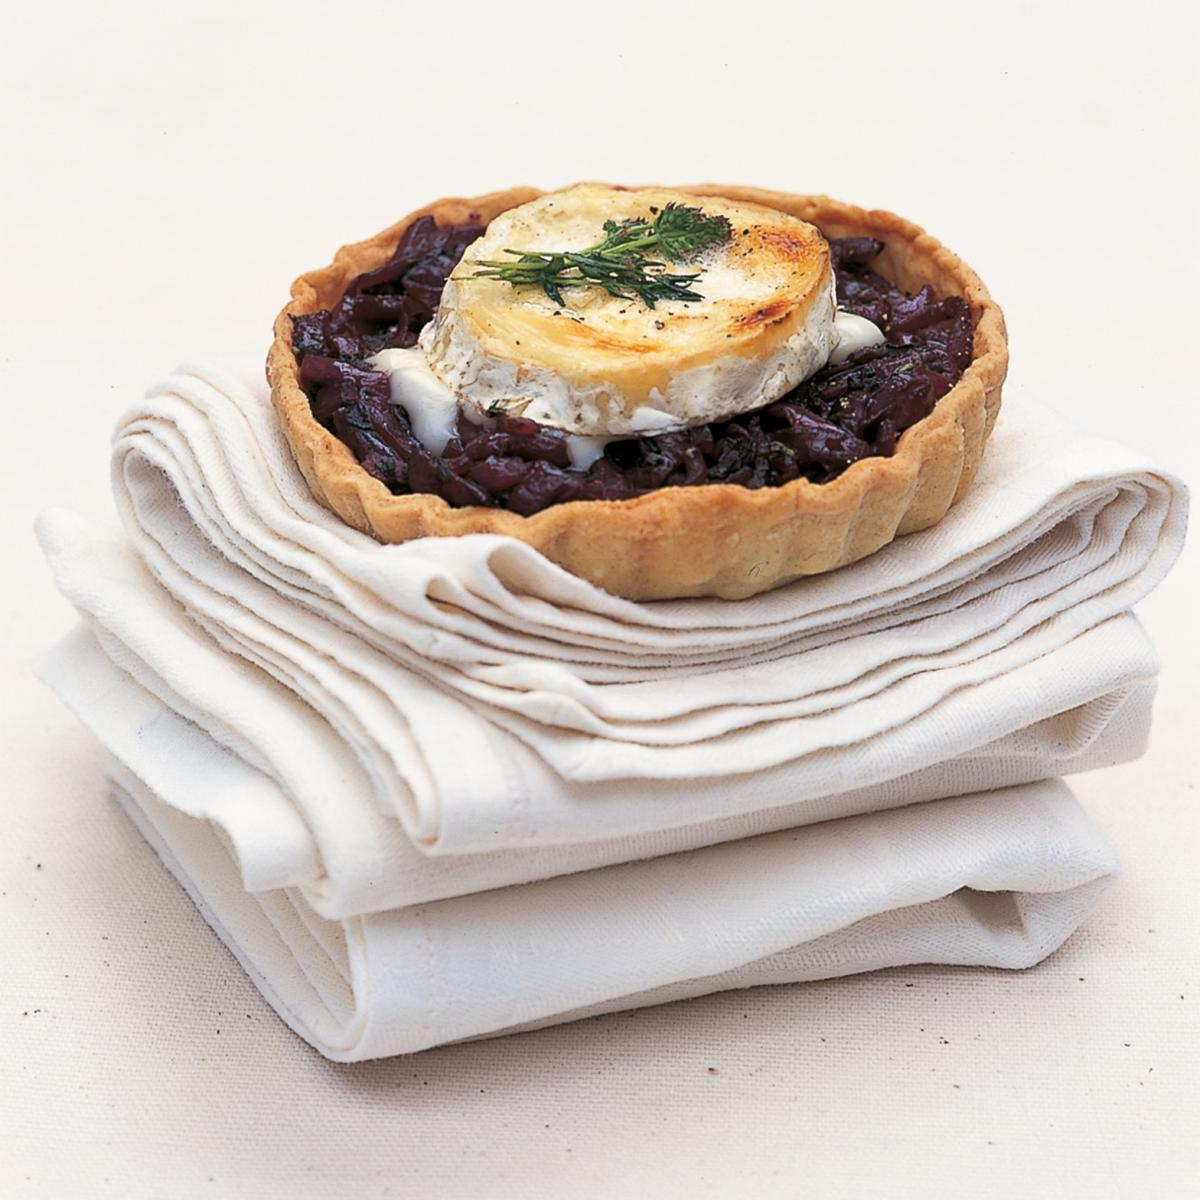 A picture of Delia's Caramelised Balsamic and Red Onion Tarts with Goats' Cheese recipe